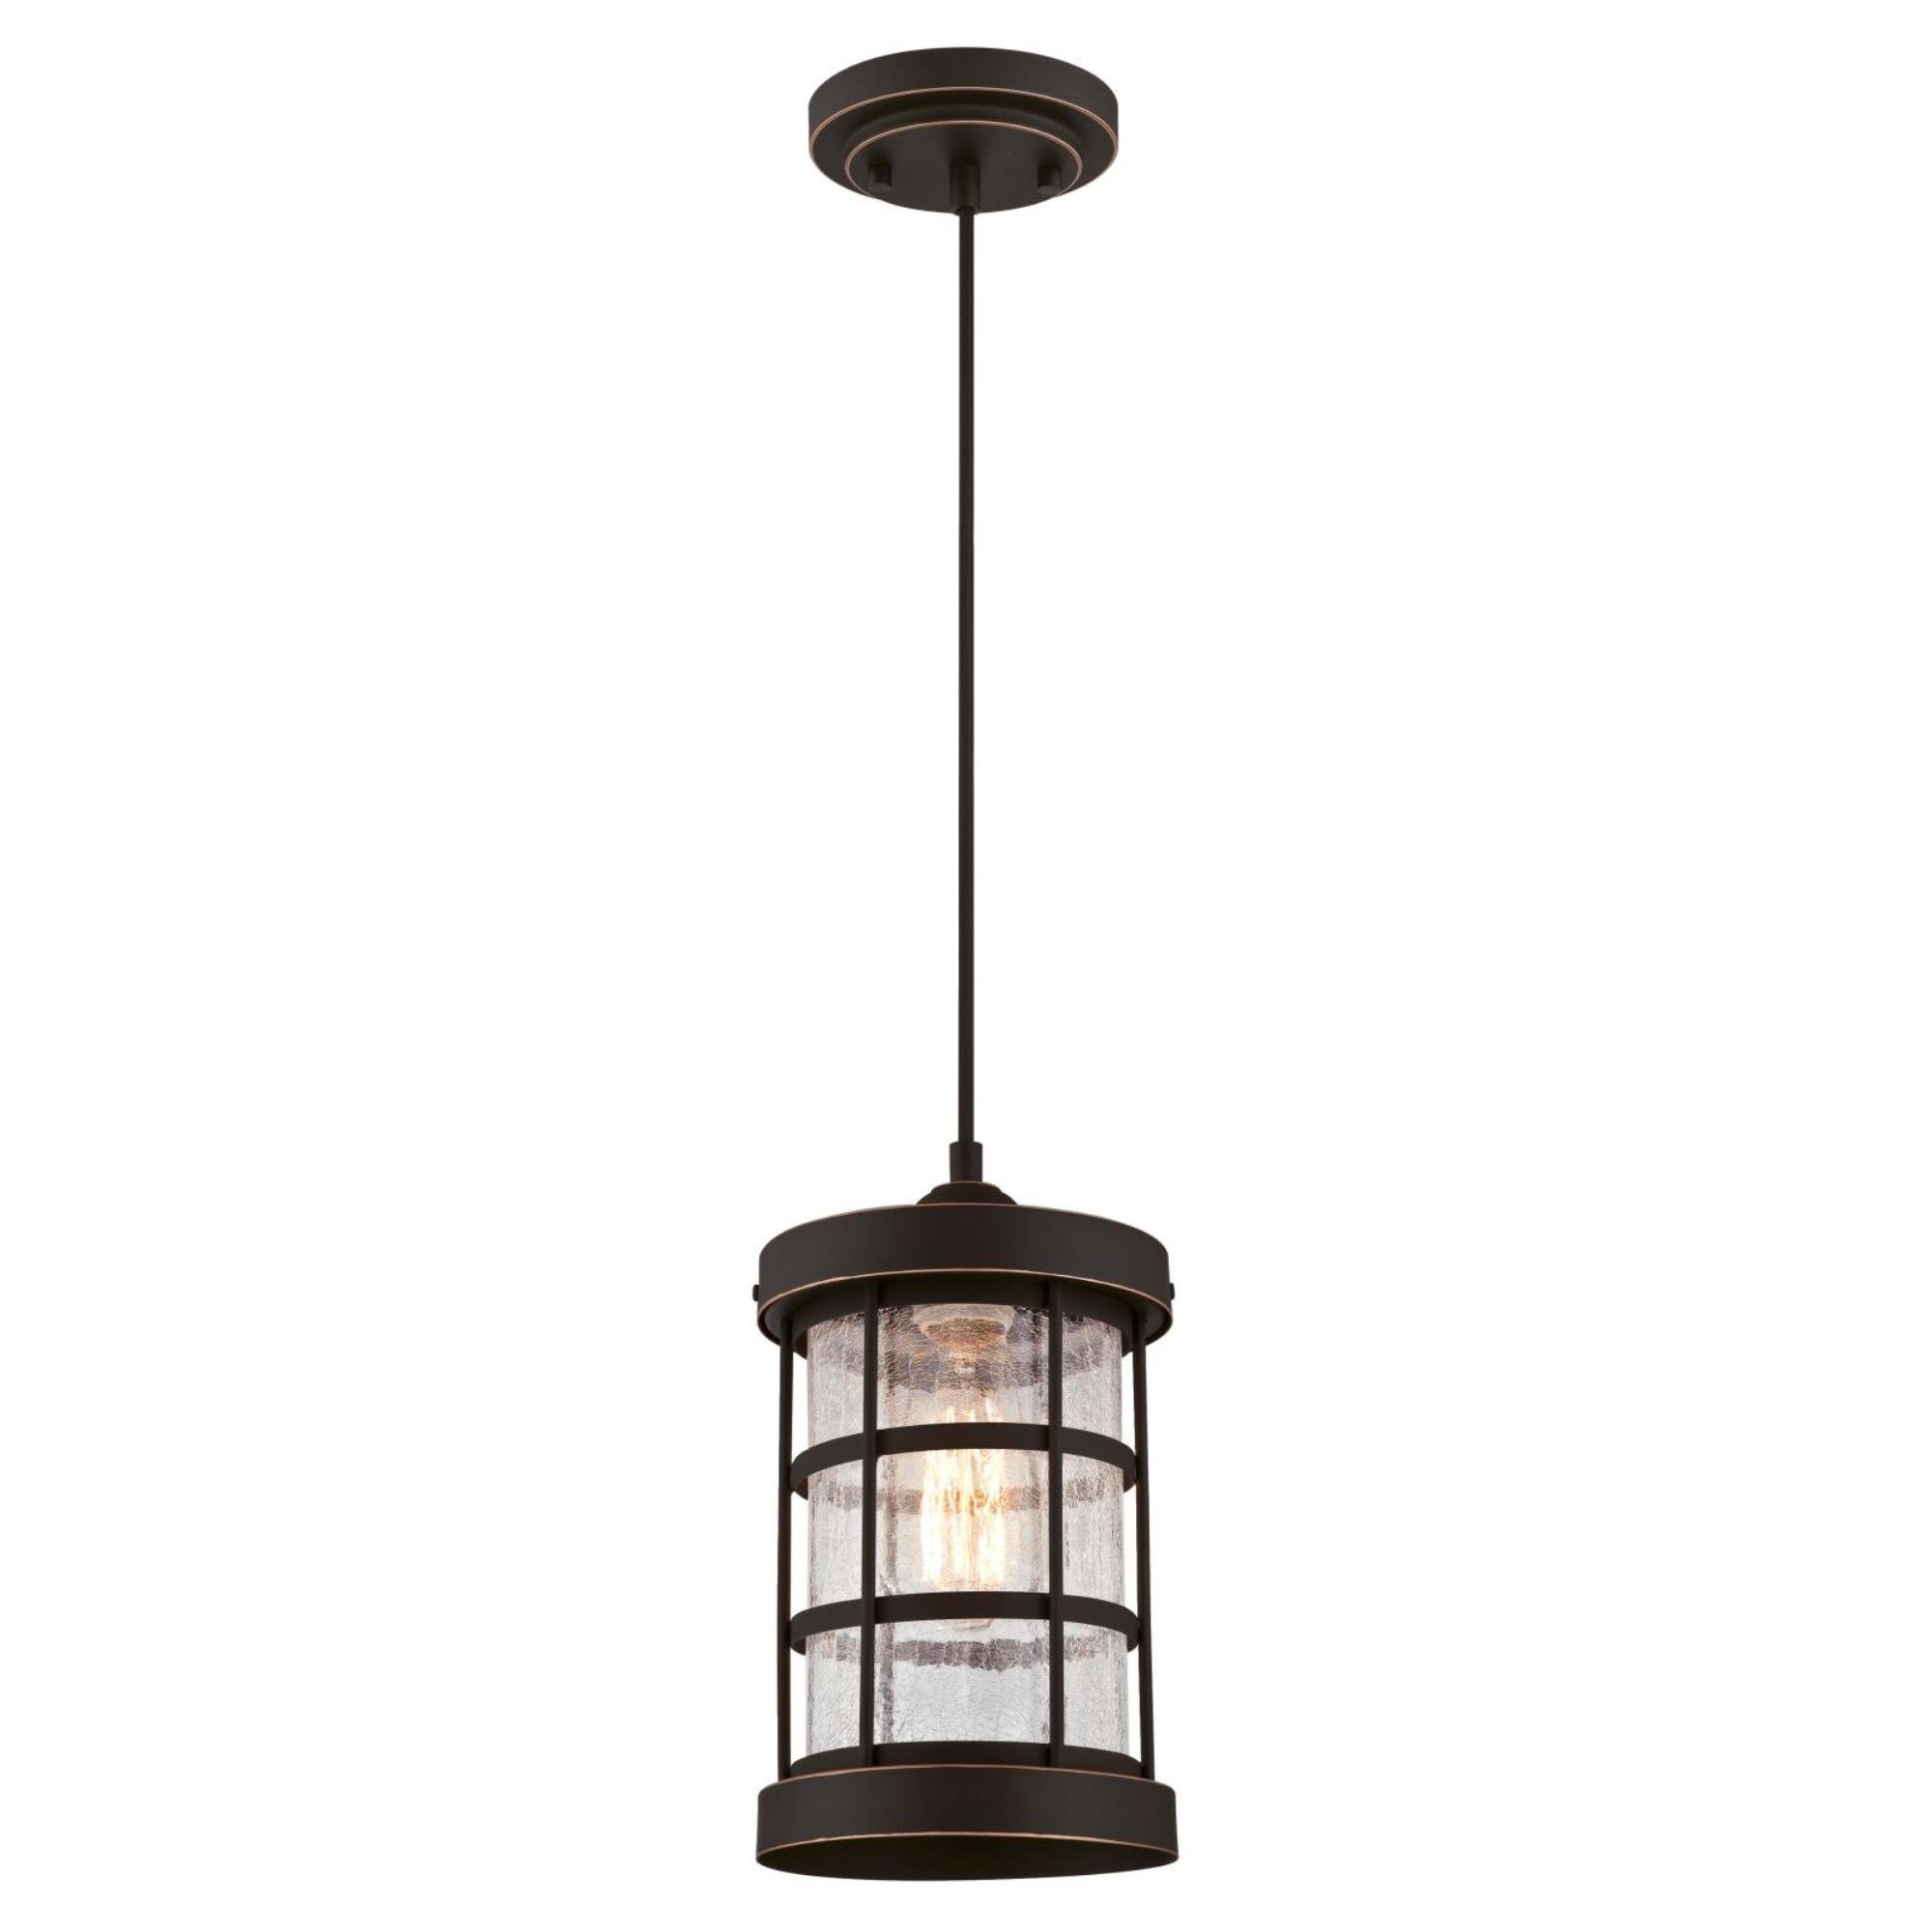 Gingras 1 Light Cylinder Pendant Within Barrons 1 Light Single Cylinder Pendants (View 9 of 30)